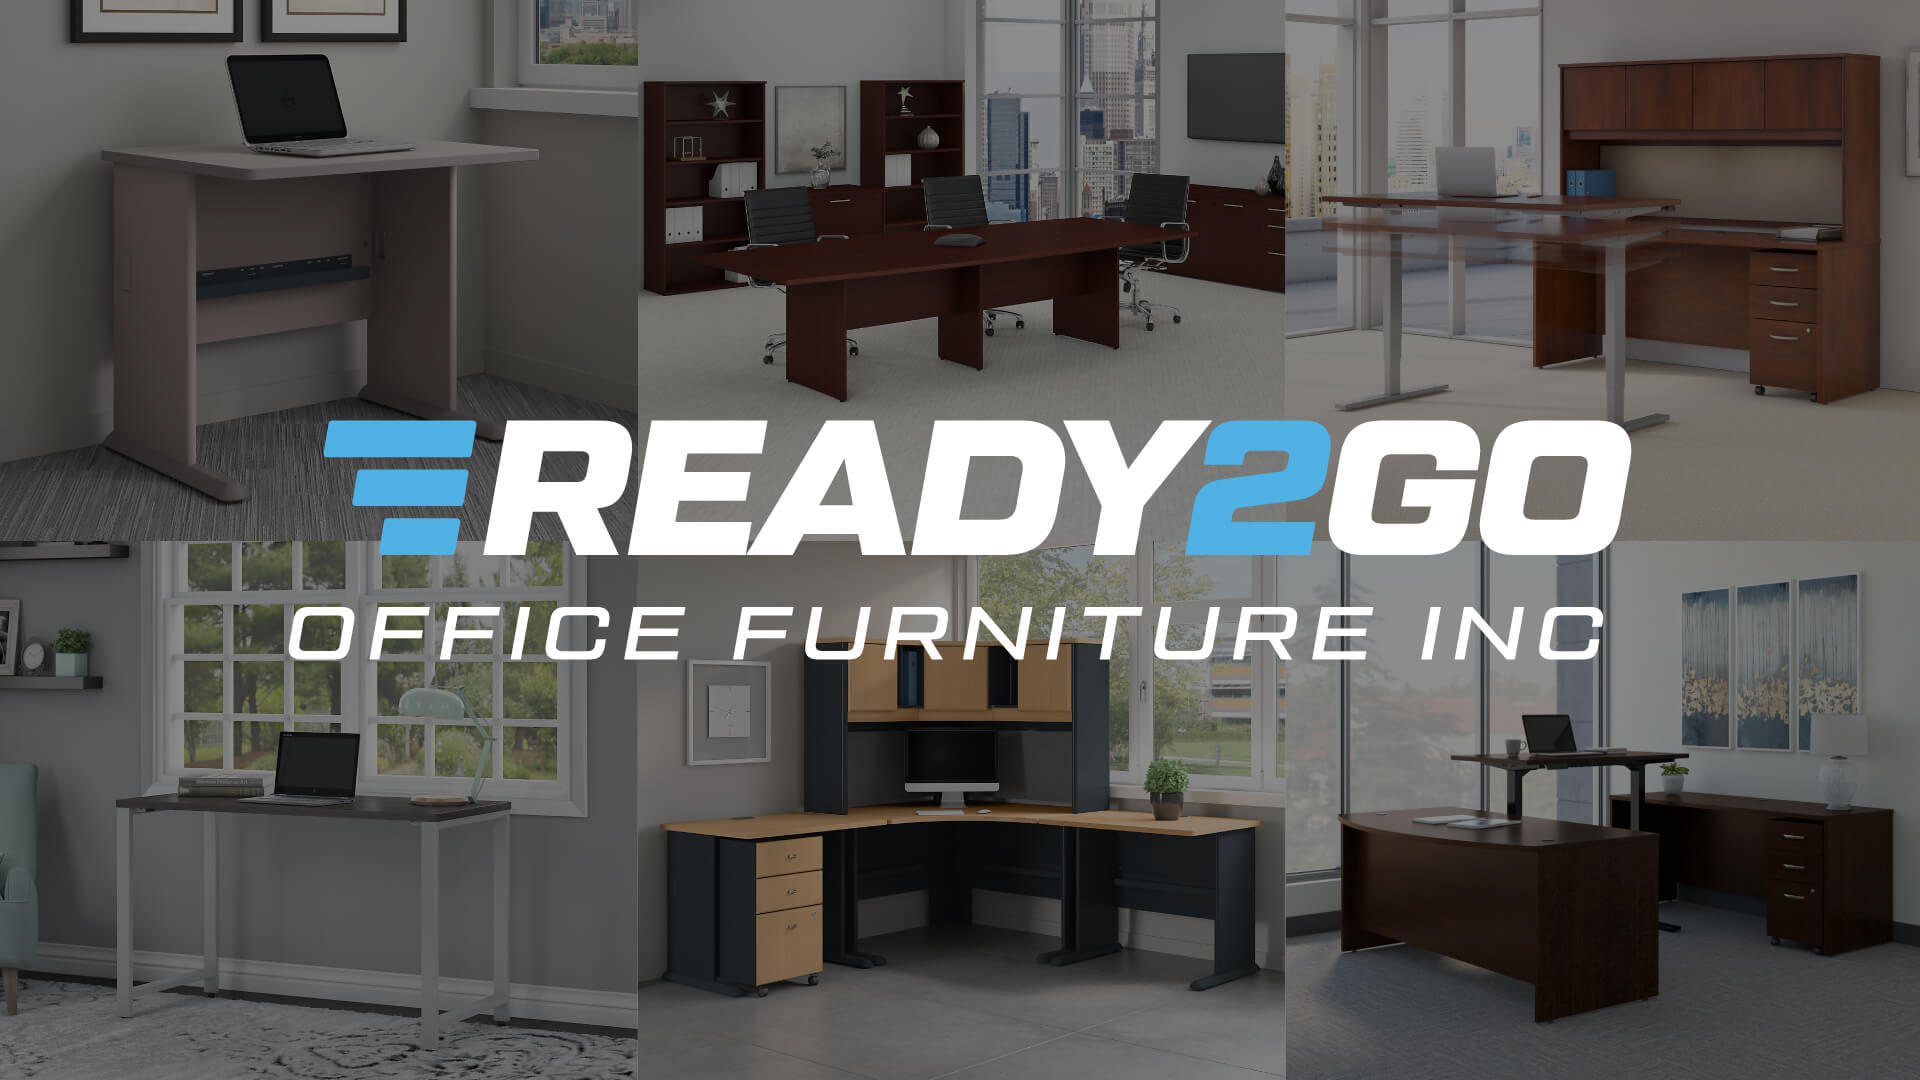 Office Furniture In Indianapolis In Ready 2 Go Office Furniture